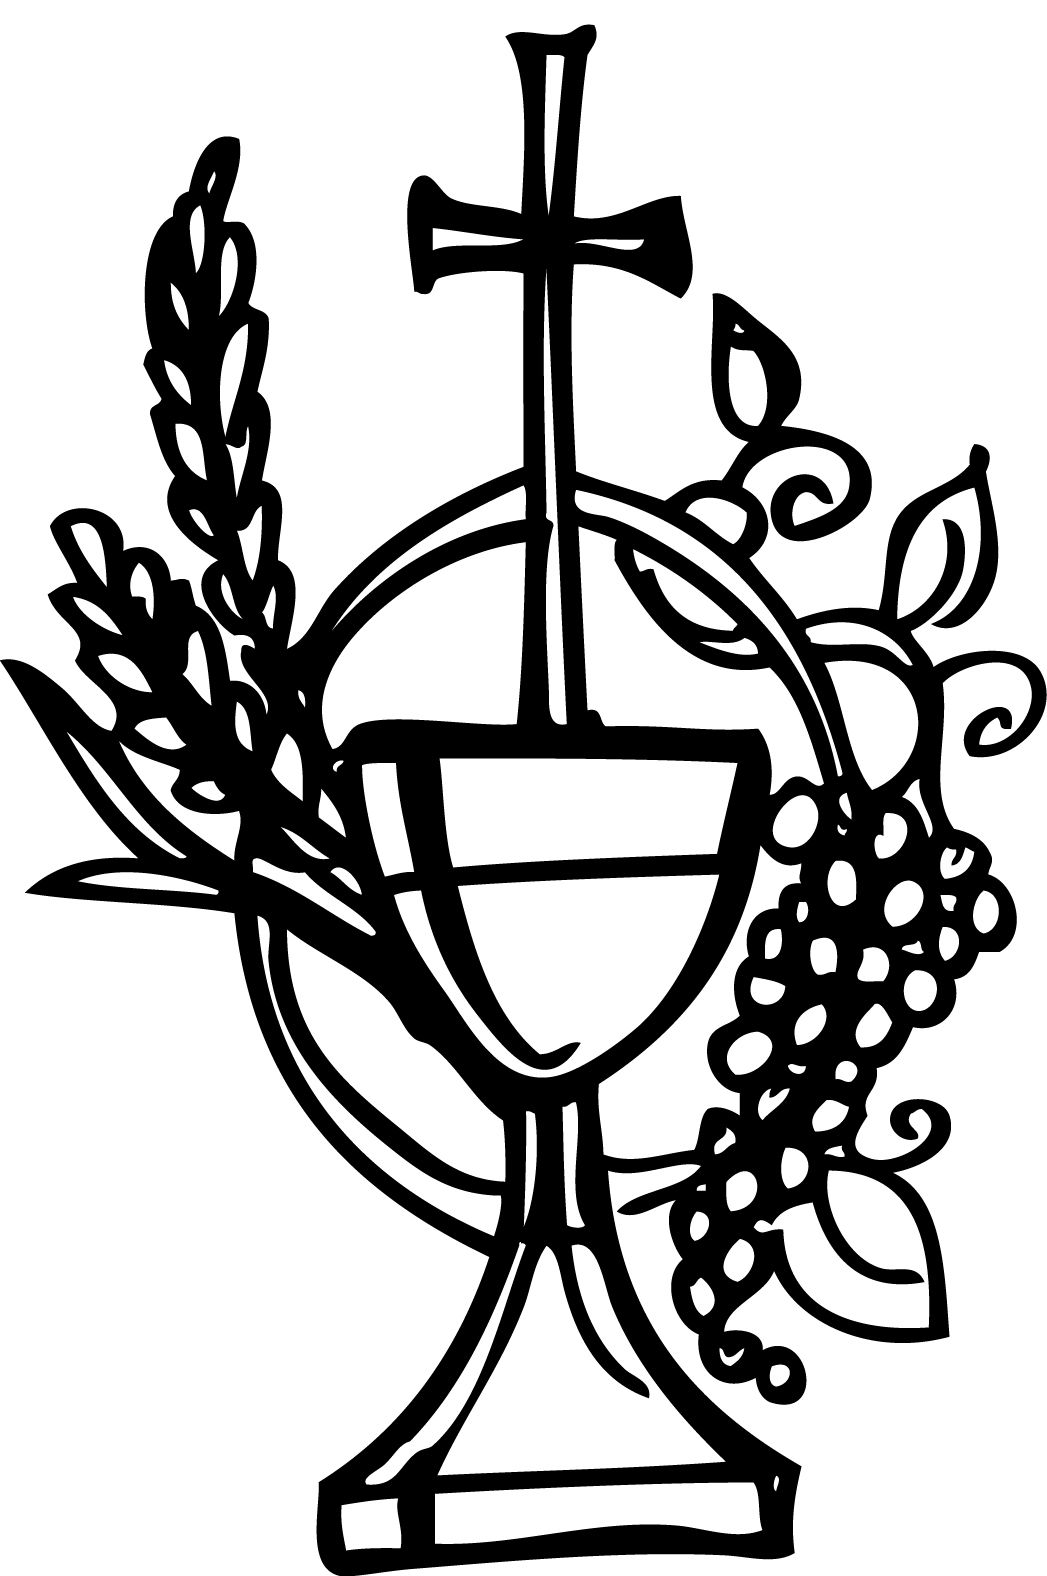 Chalice clipart first communion. Cliparts co and advent